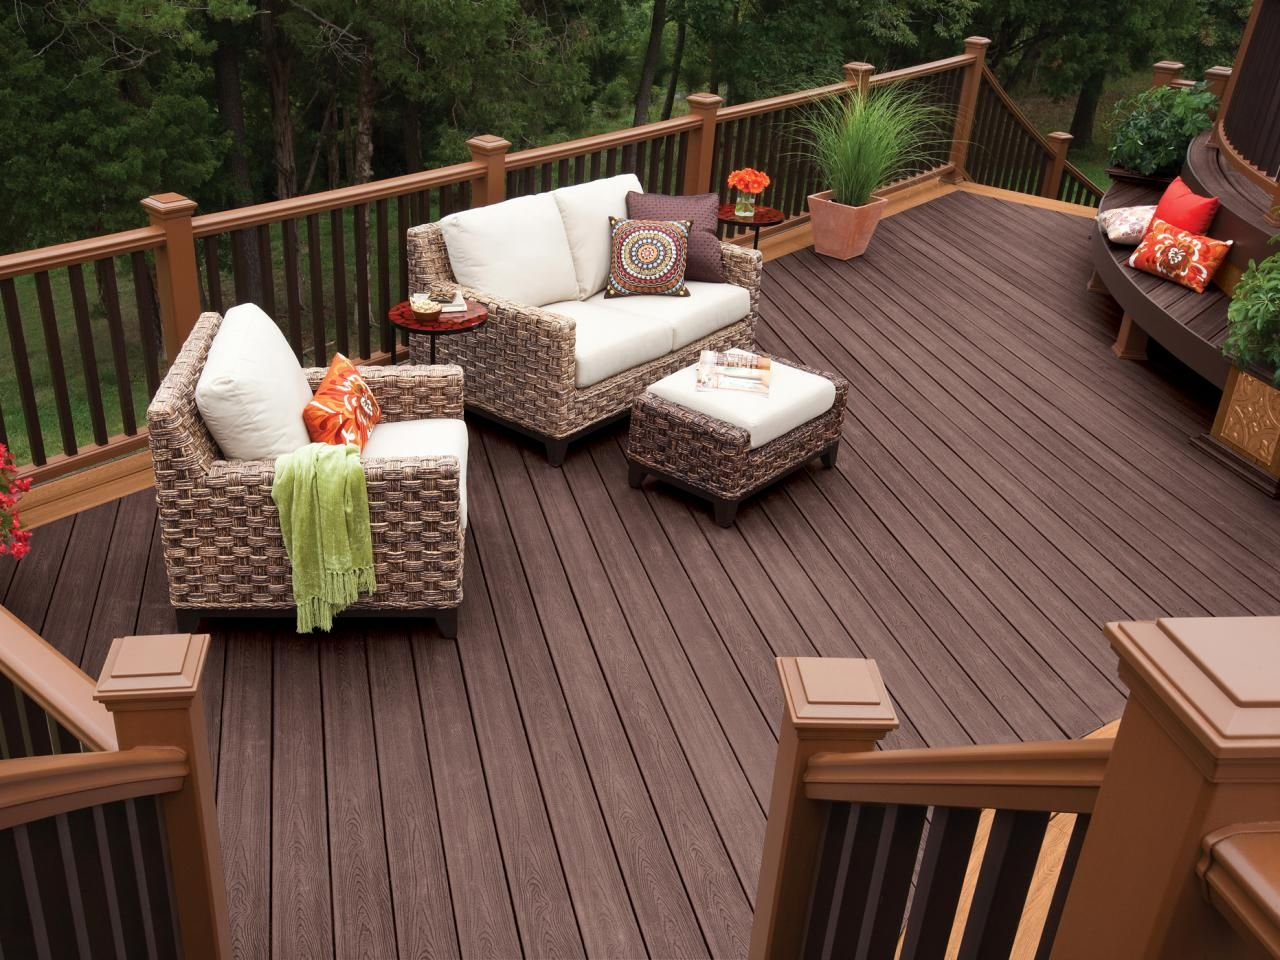 Pictures of beautiful backyard decks, patios and fire pits | Deck ...